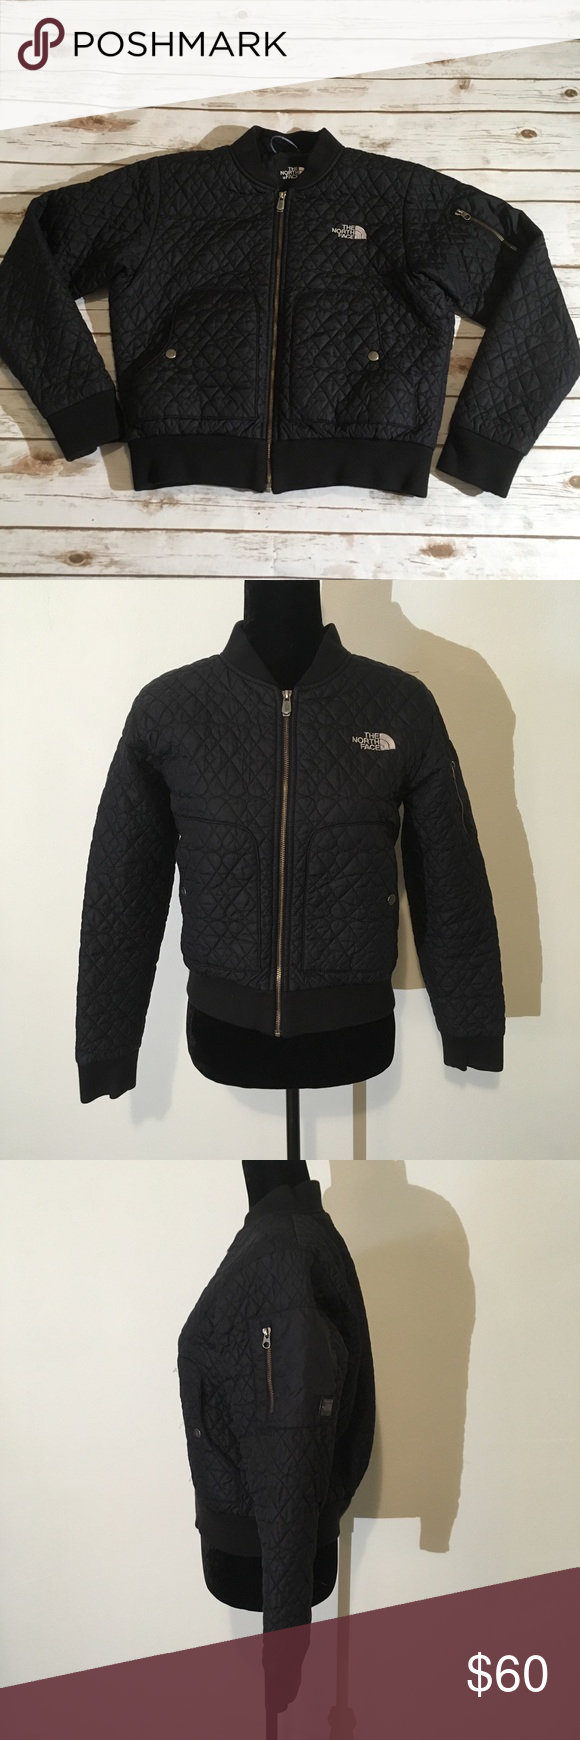 The North Face Black Quilted Bomber Jacket Black North Face Quilted Bomber Jacket Jackets [ 1740 x 580 Pixel ]